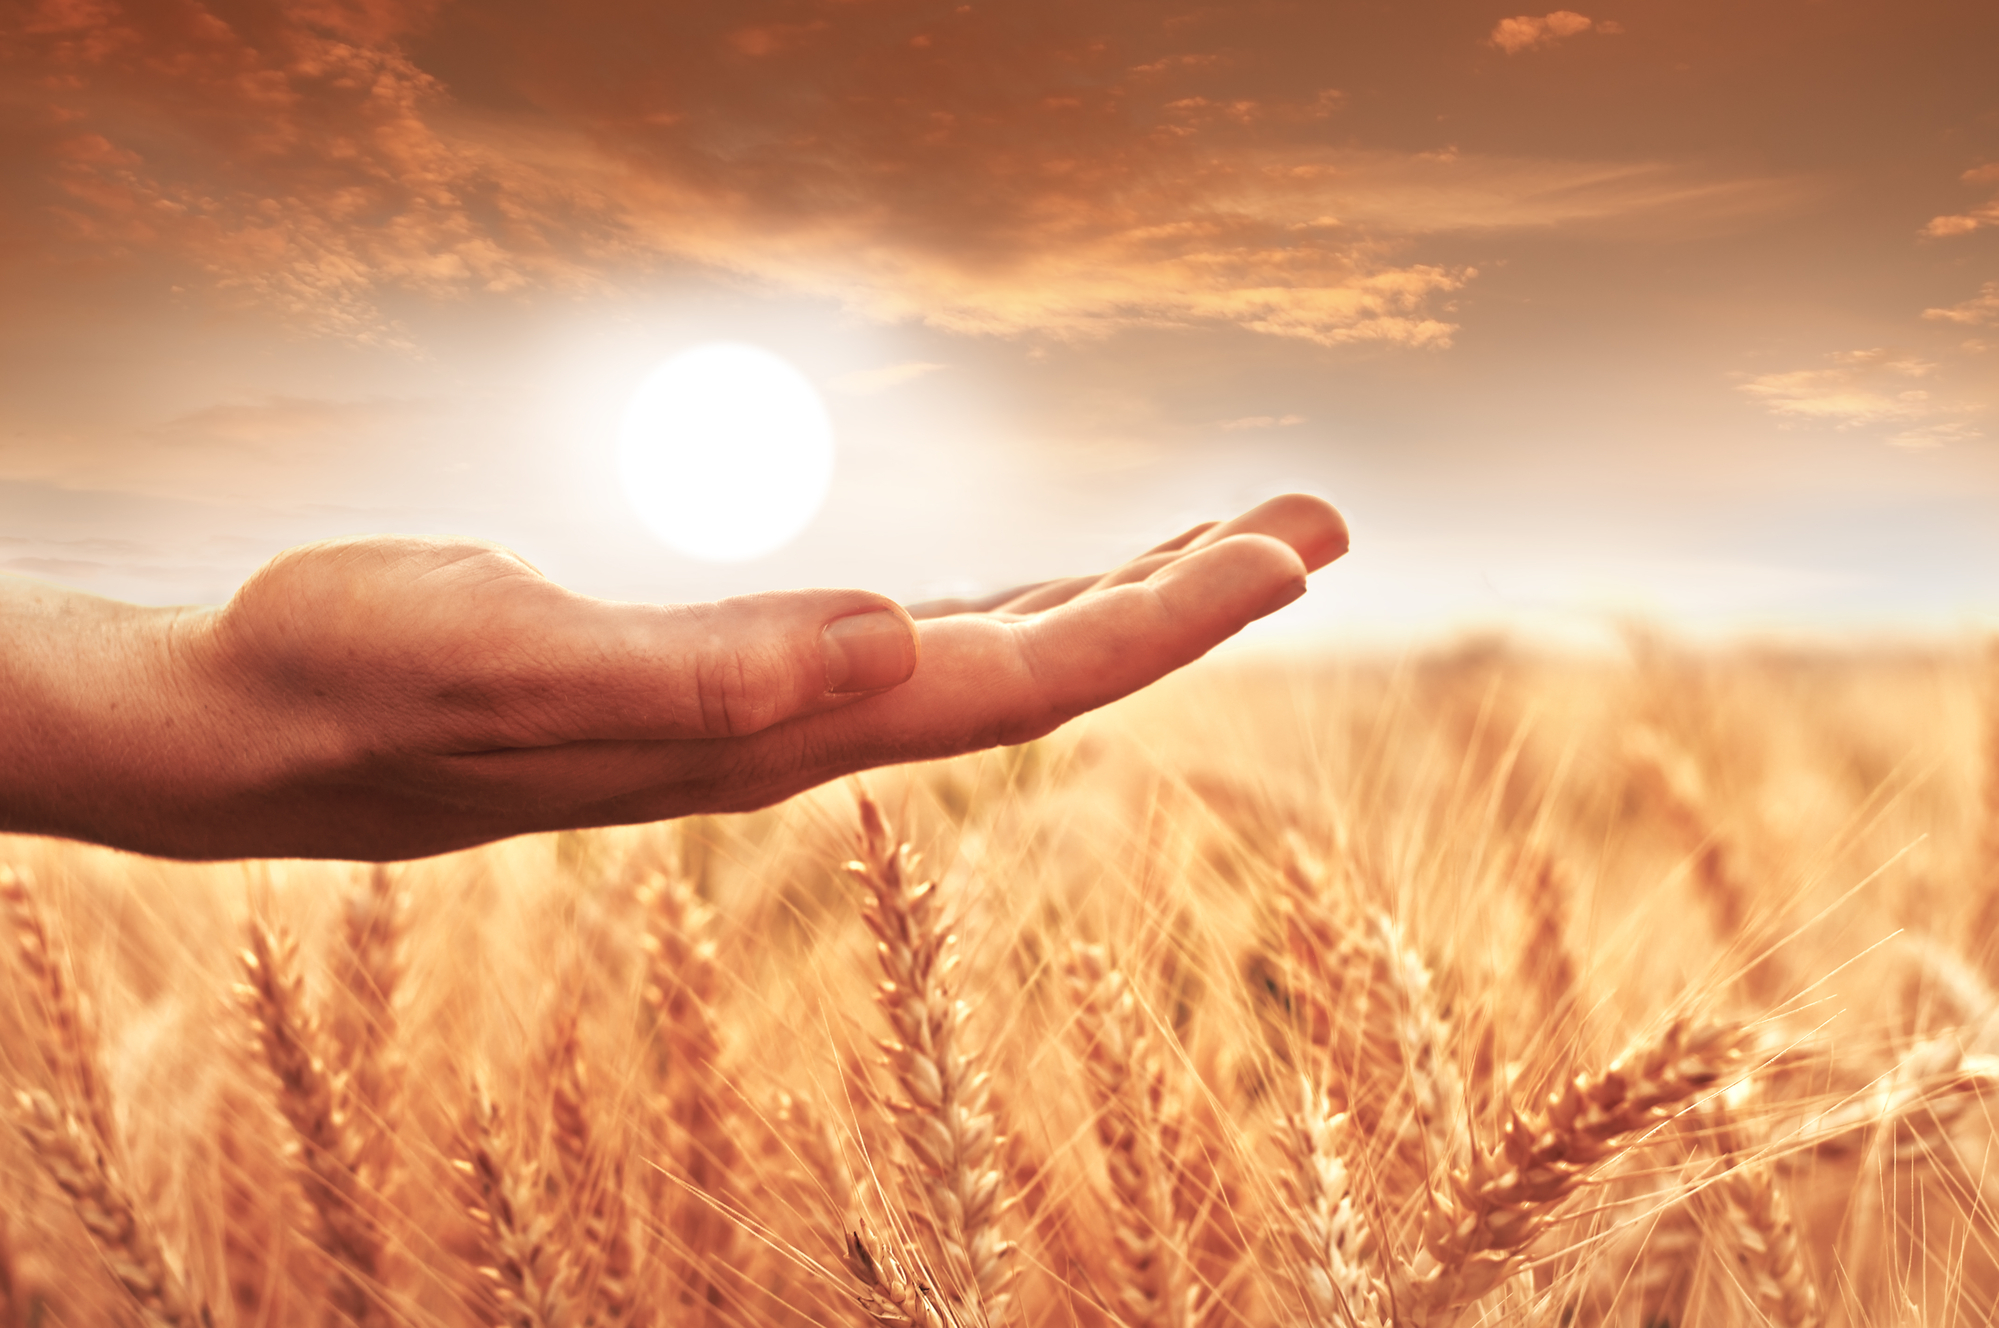 Woman's hand holding the sun over wheat field